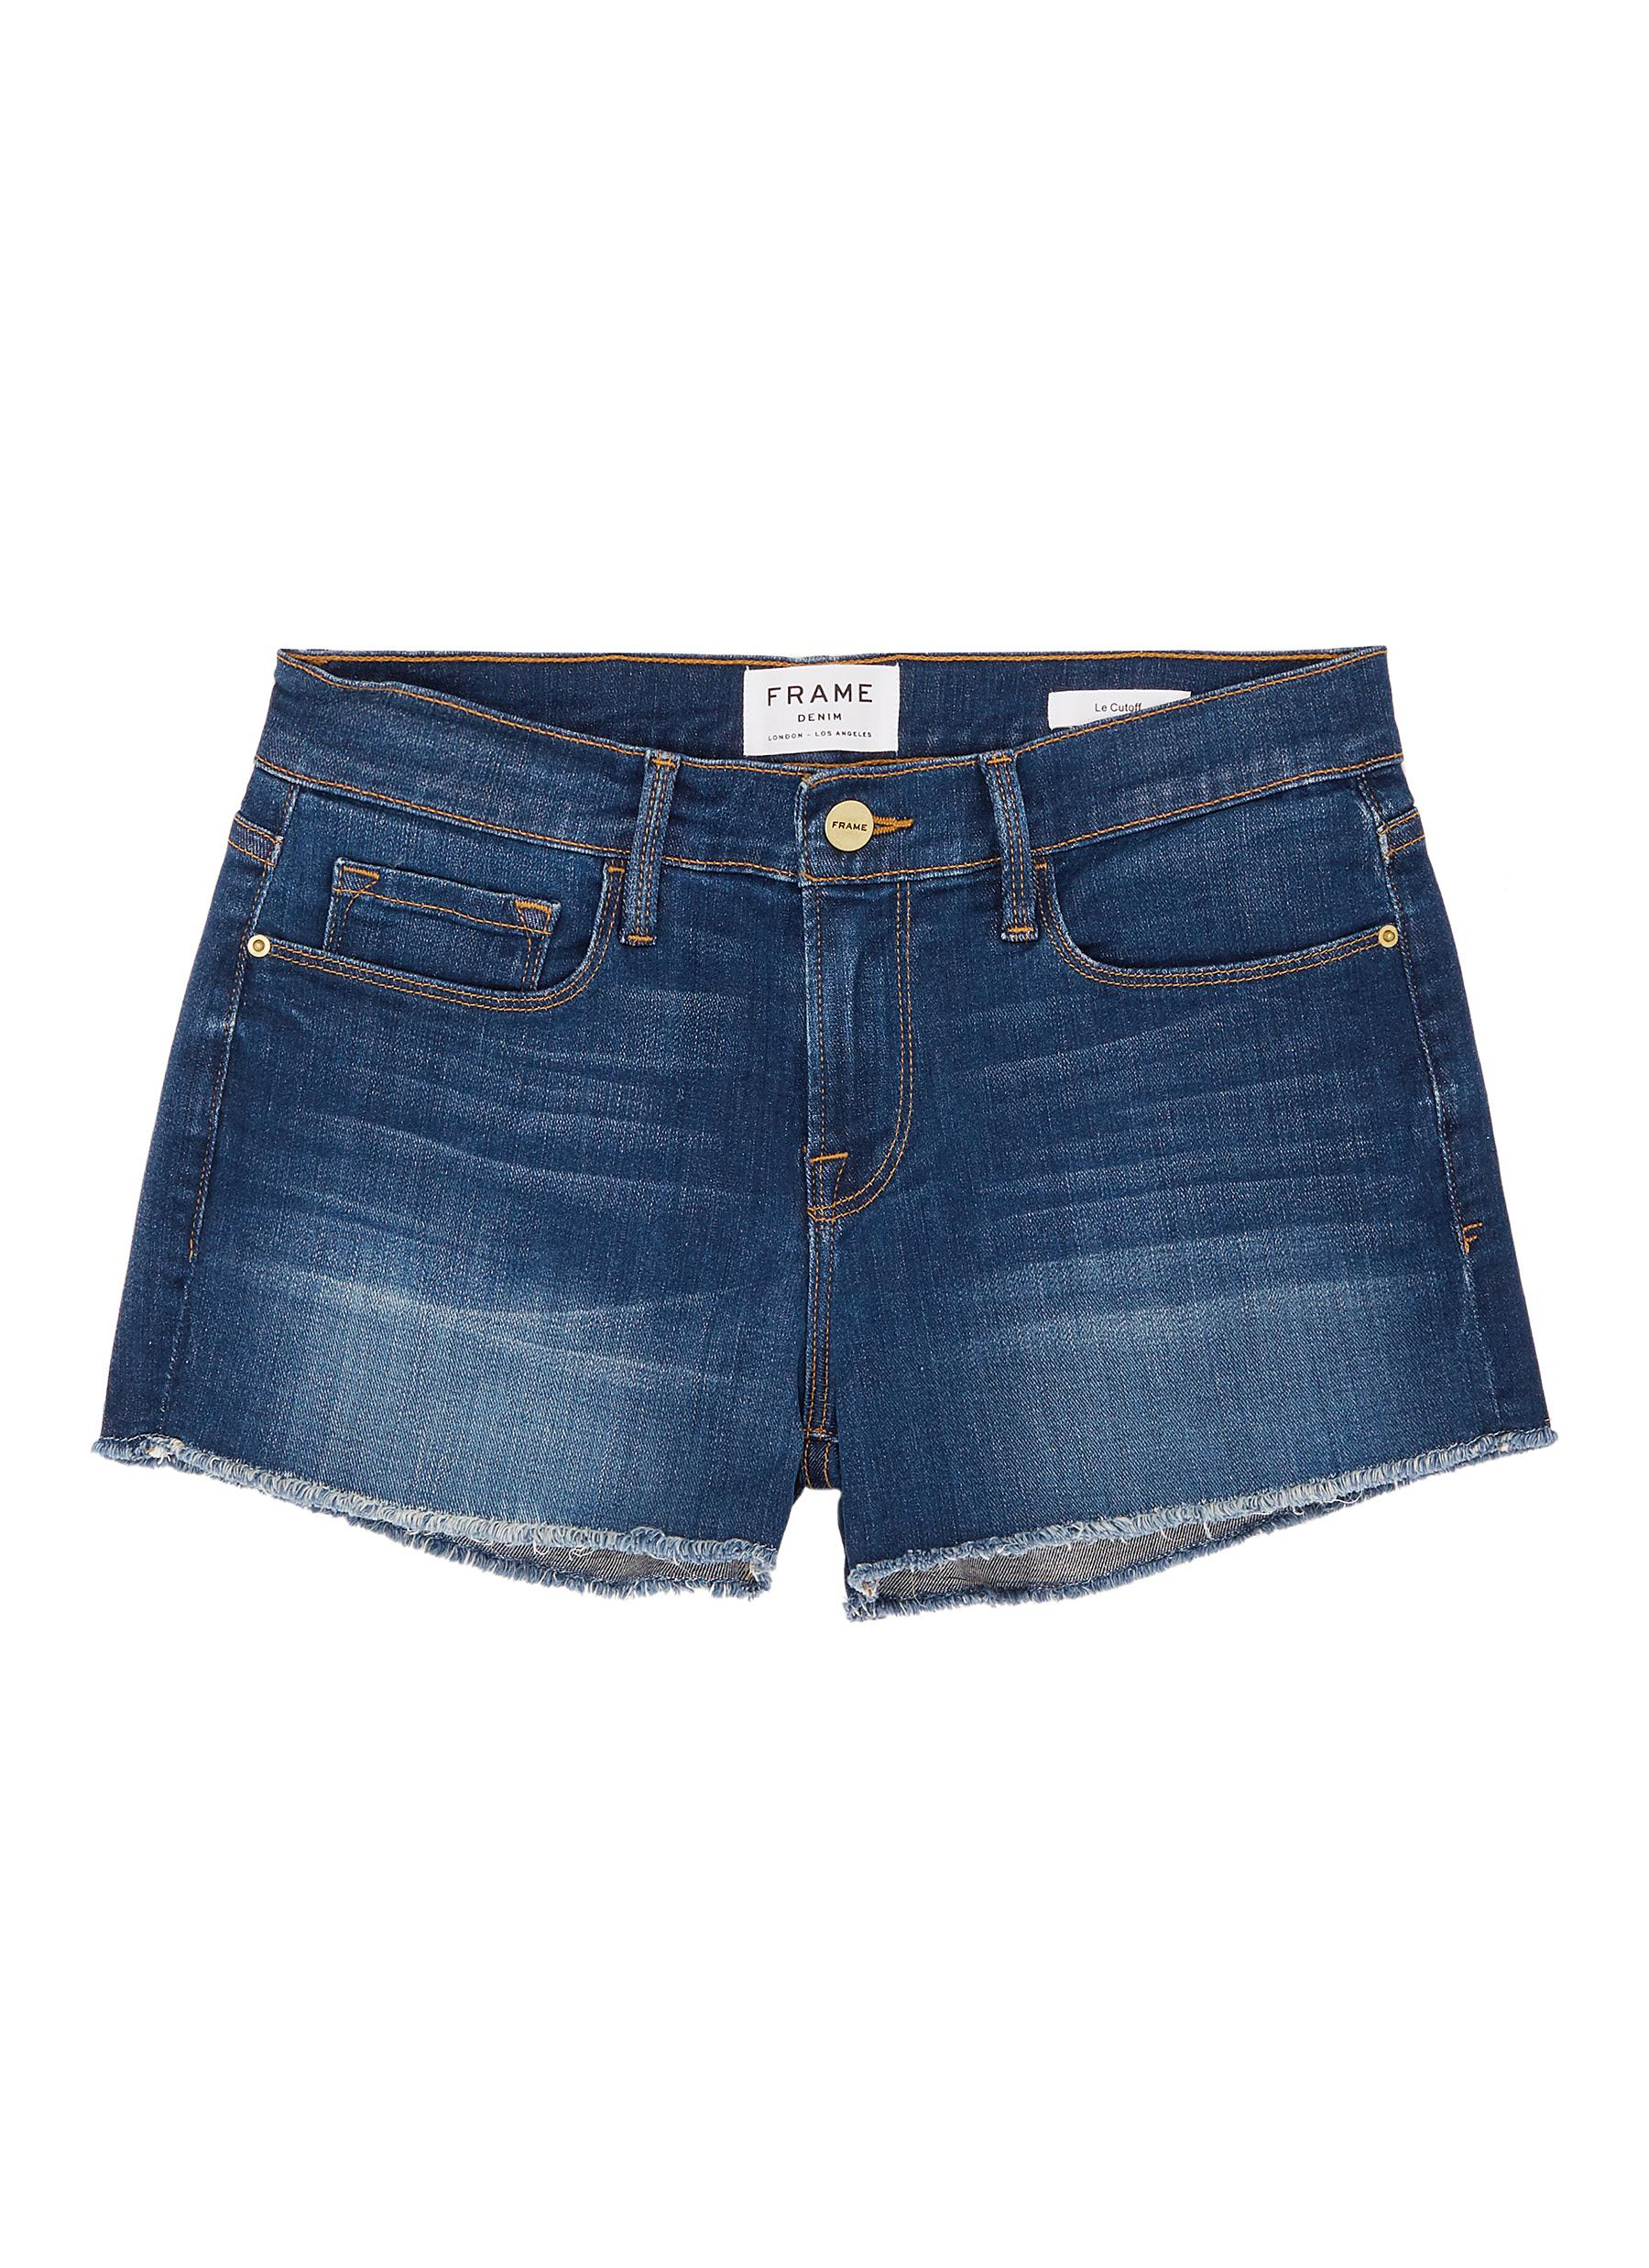 Buy Frame Denim Jeans 'Le Cut Off Williams' raw edge cuff denim shorts